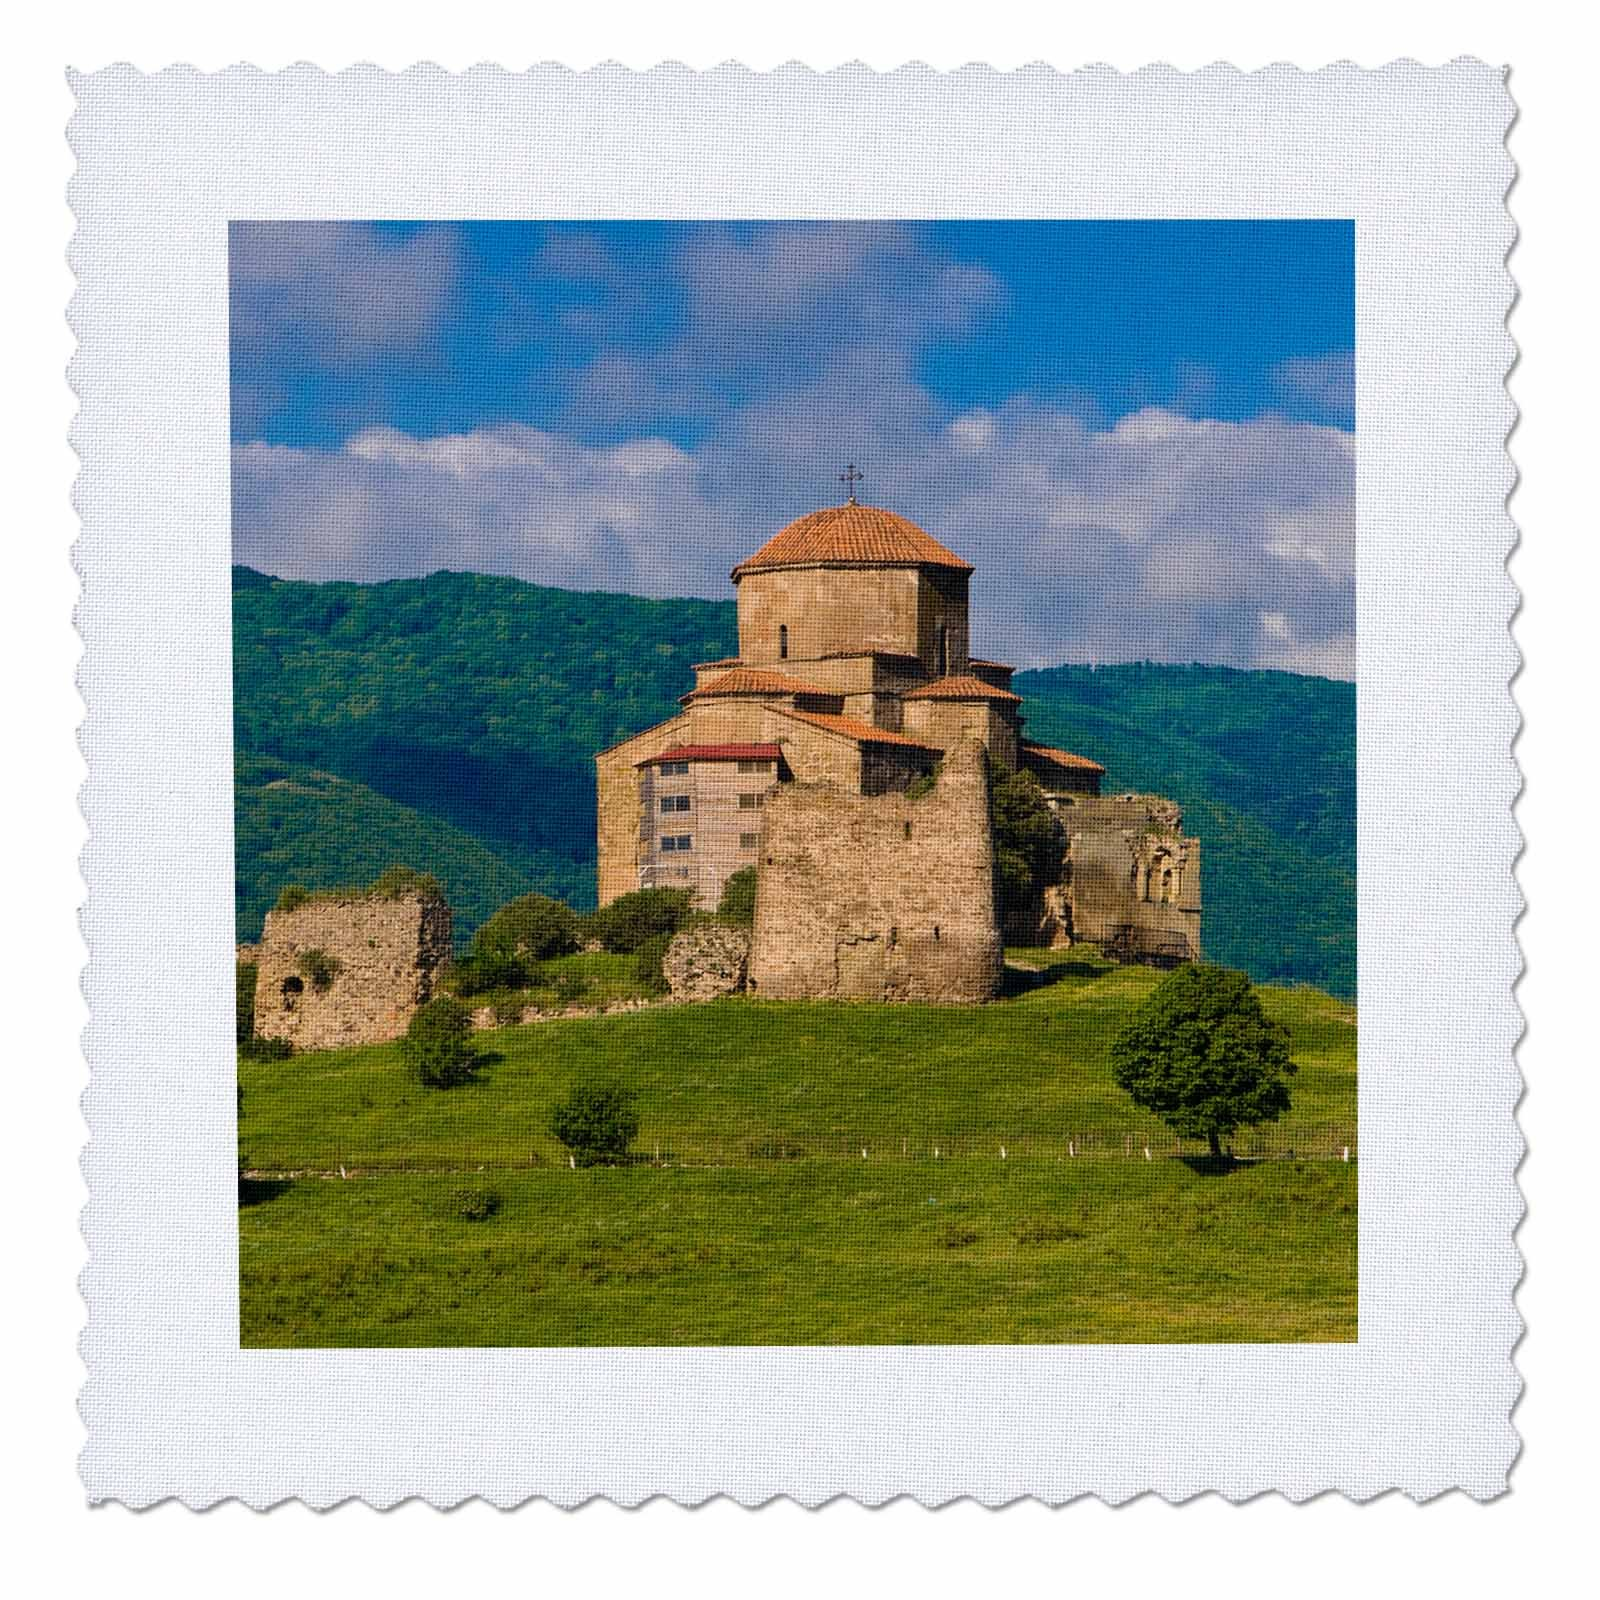 3dRose Danita Delimont - Churches - Jvari Monastery, Monastery of the Cross, Mtskheta, Georgia - 16x16 inch quilt square (qs_257173_6)